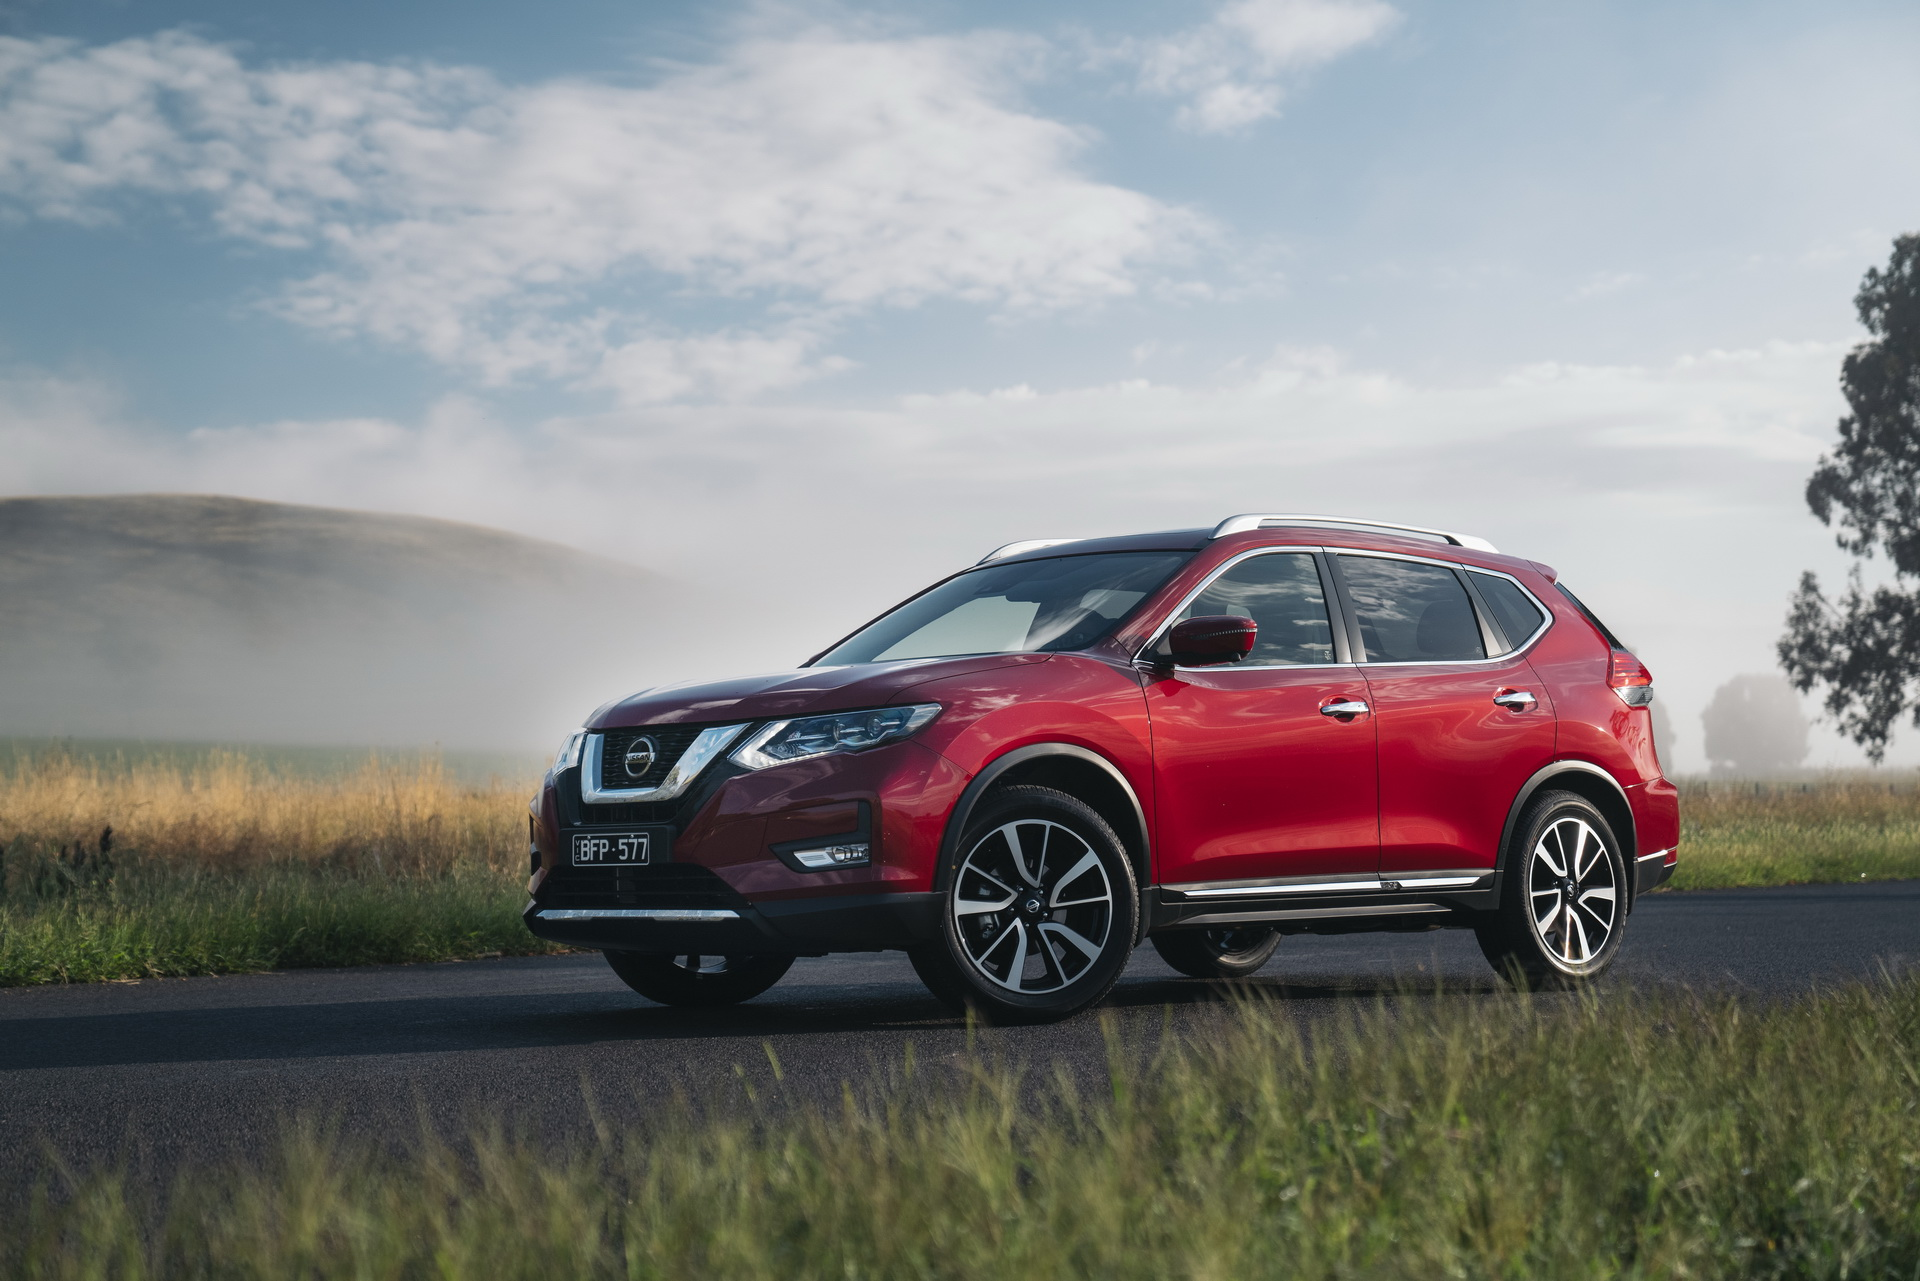 Nissan has an all-new X-Trail SUV to offer on many markets outside of Australia (watch the video for an overview), but the customers Down Under will have to make do with a mildly facelifted old generation.